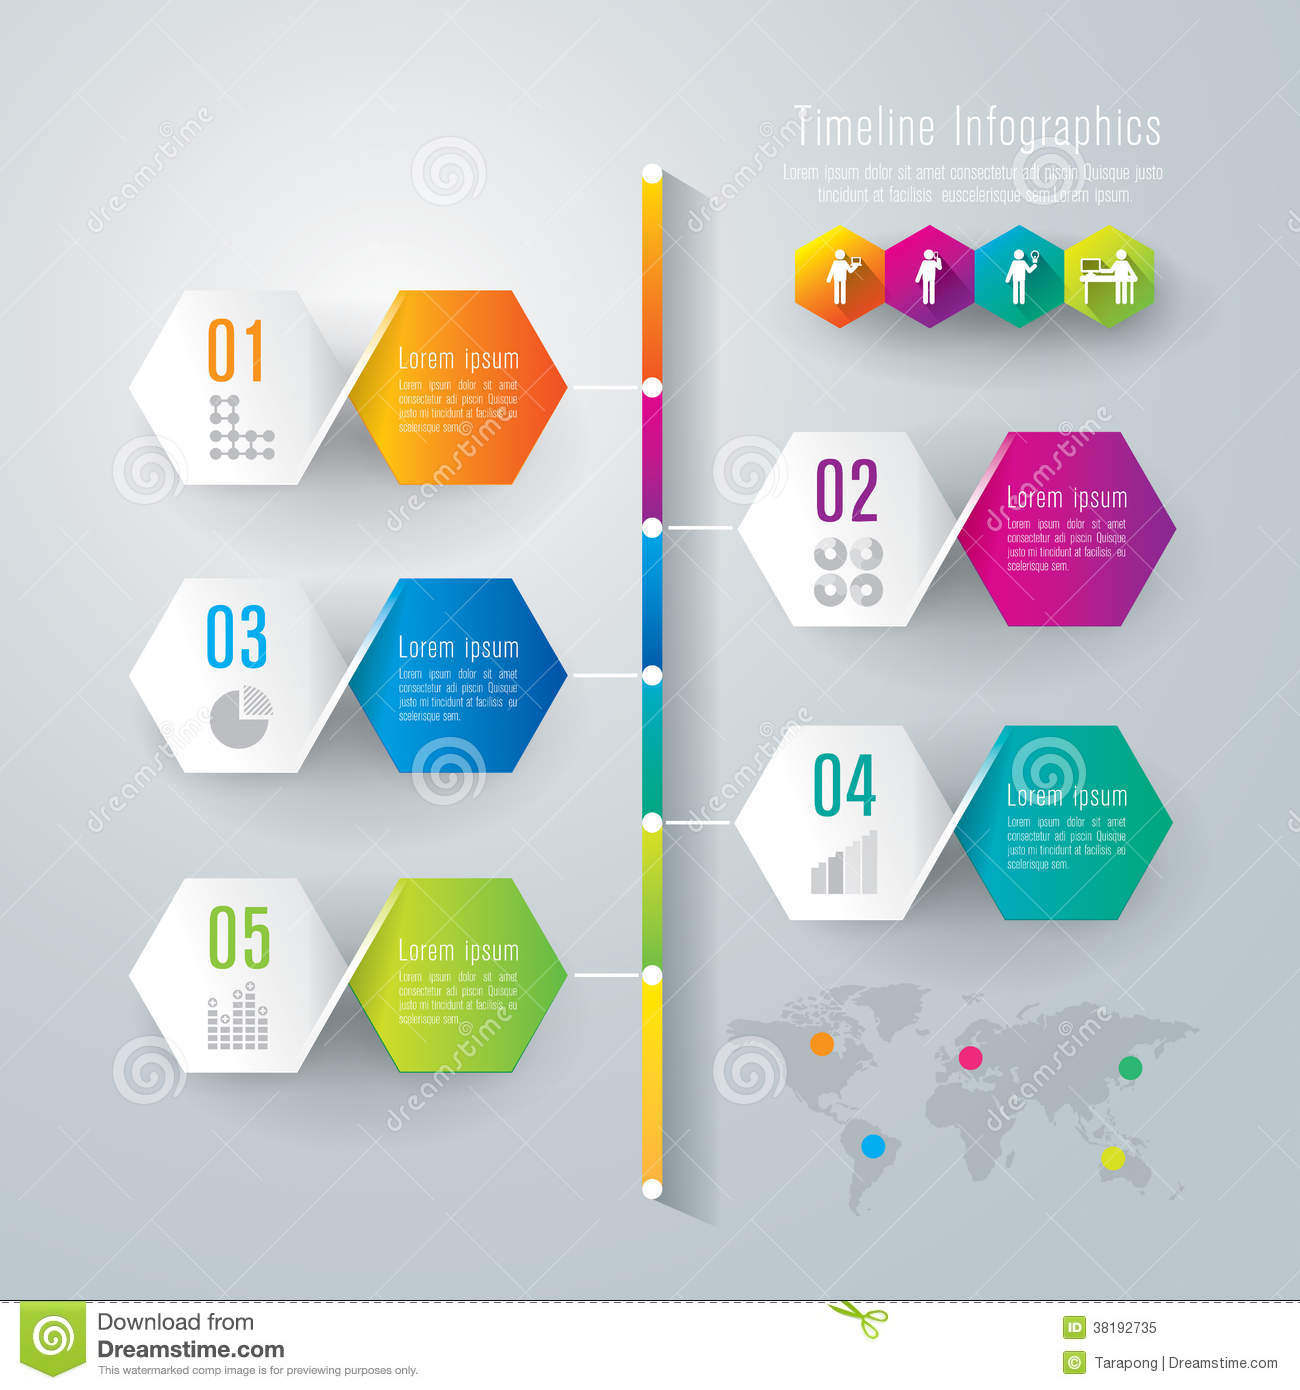 9 Infographics Timeline Design Template Images